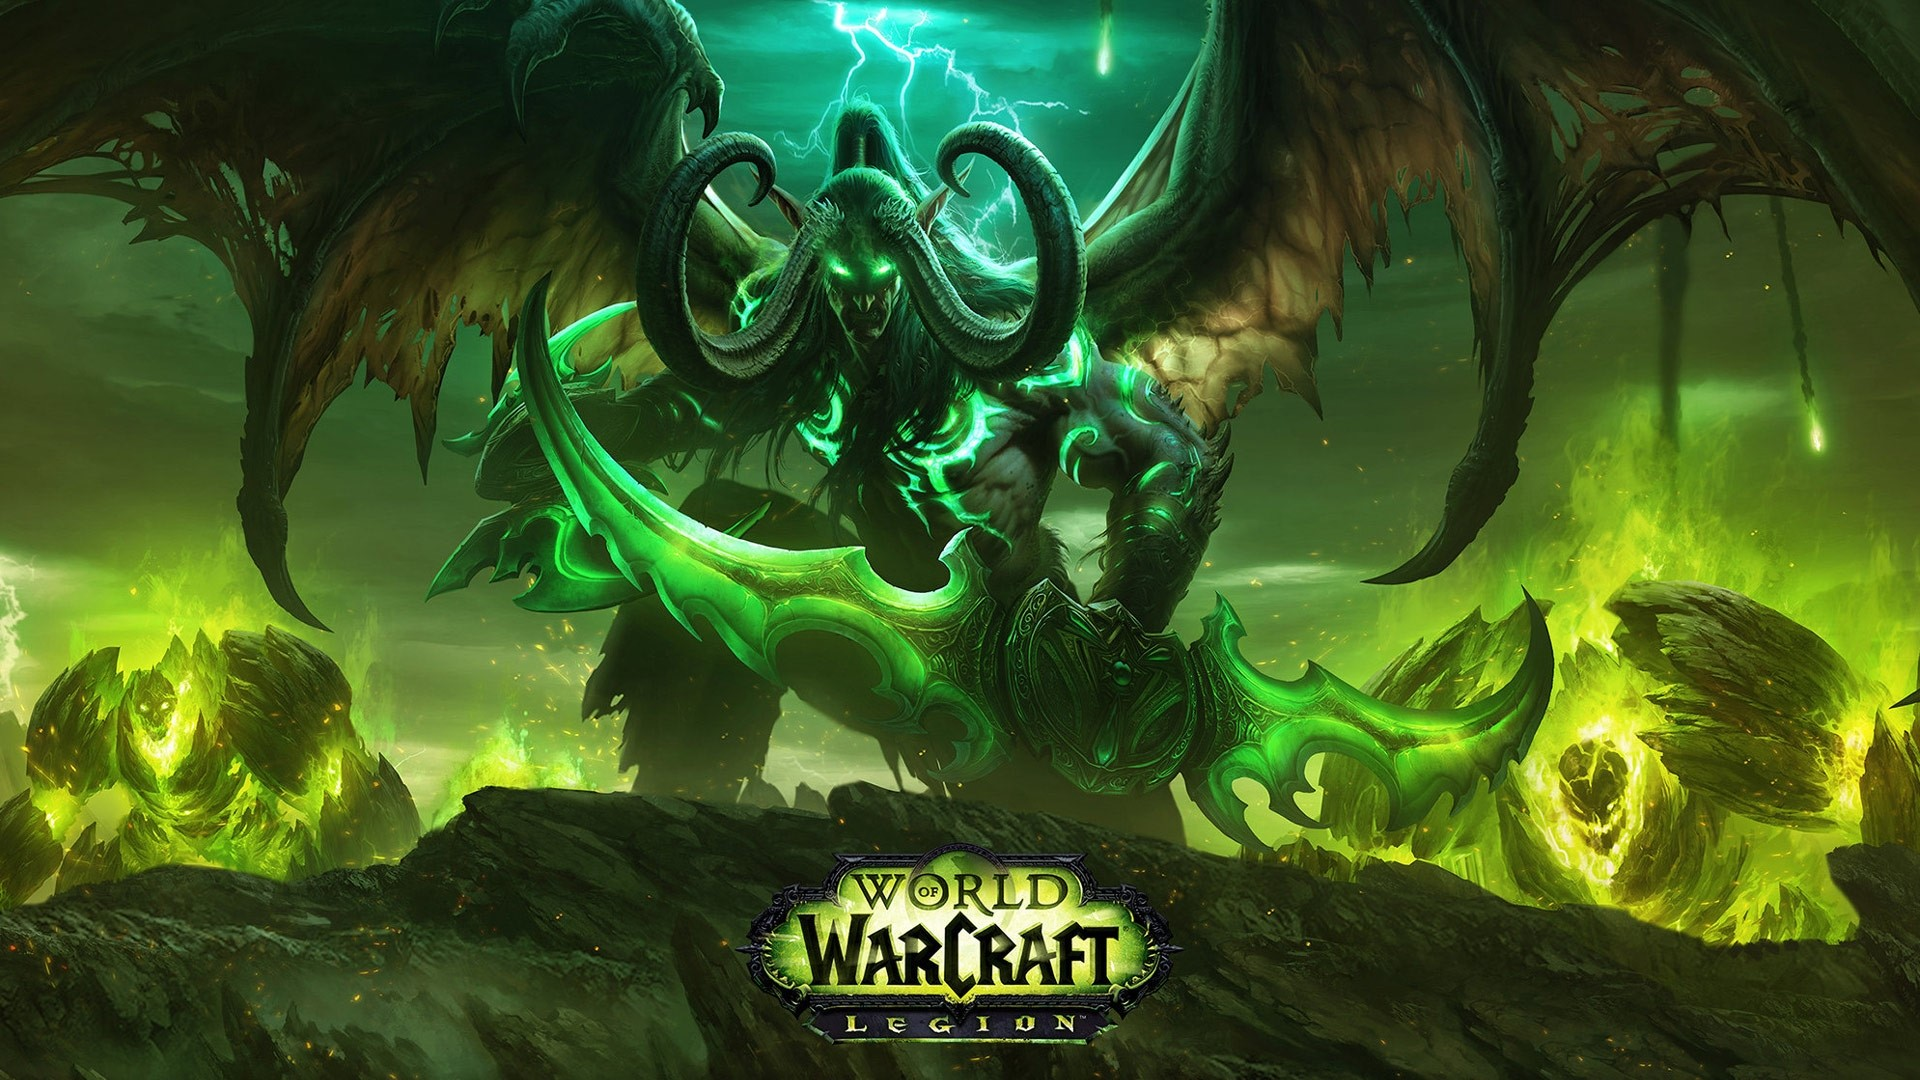 World of Warcraft: Legion (Battle.net key) + Bonus